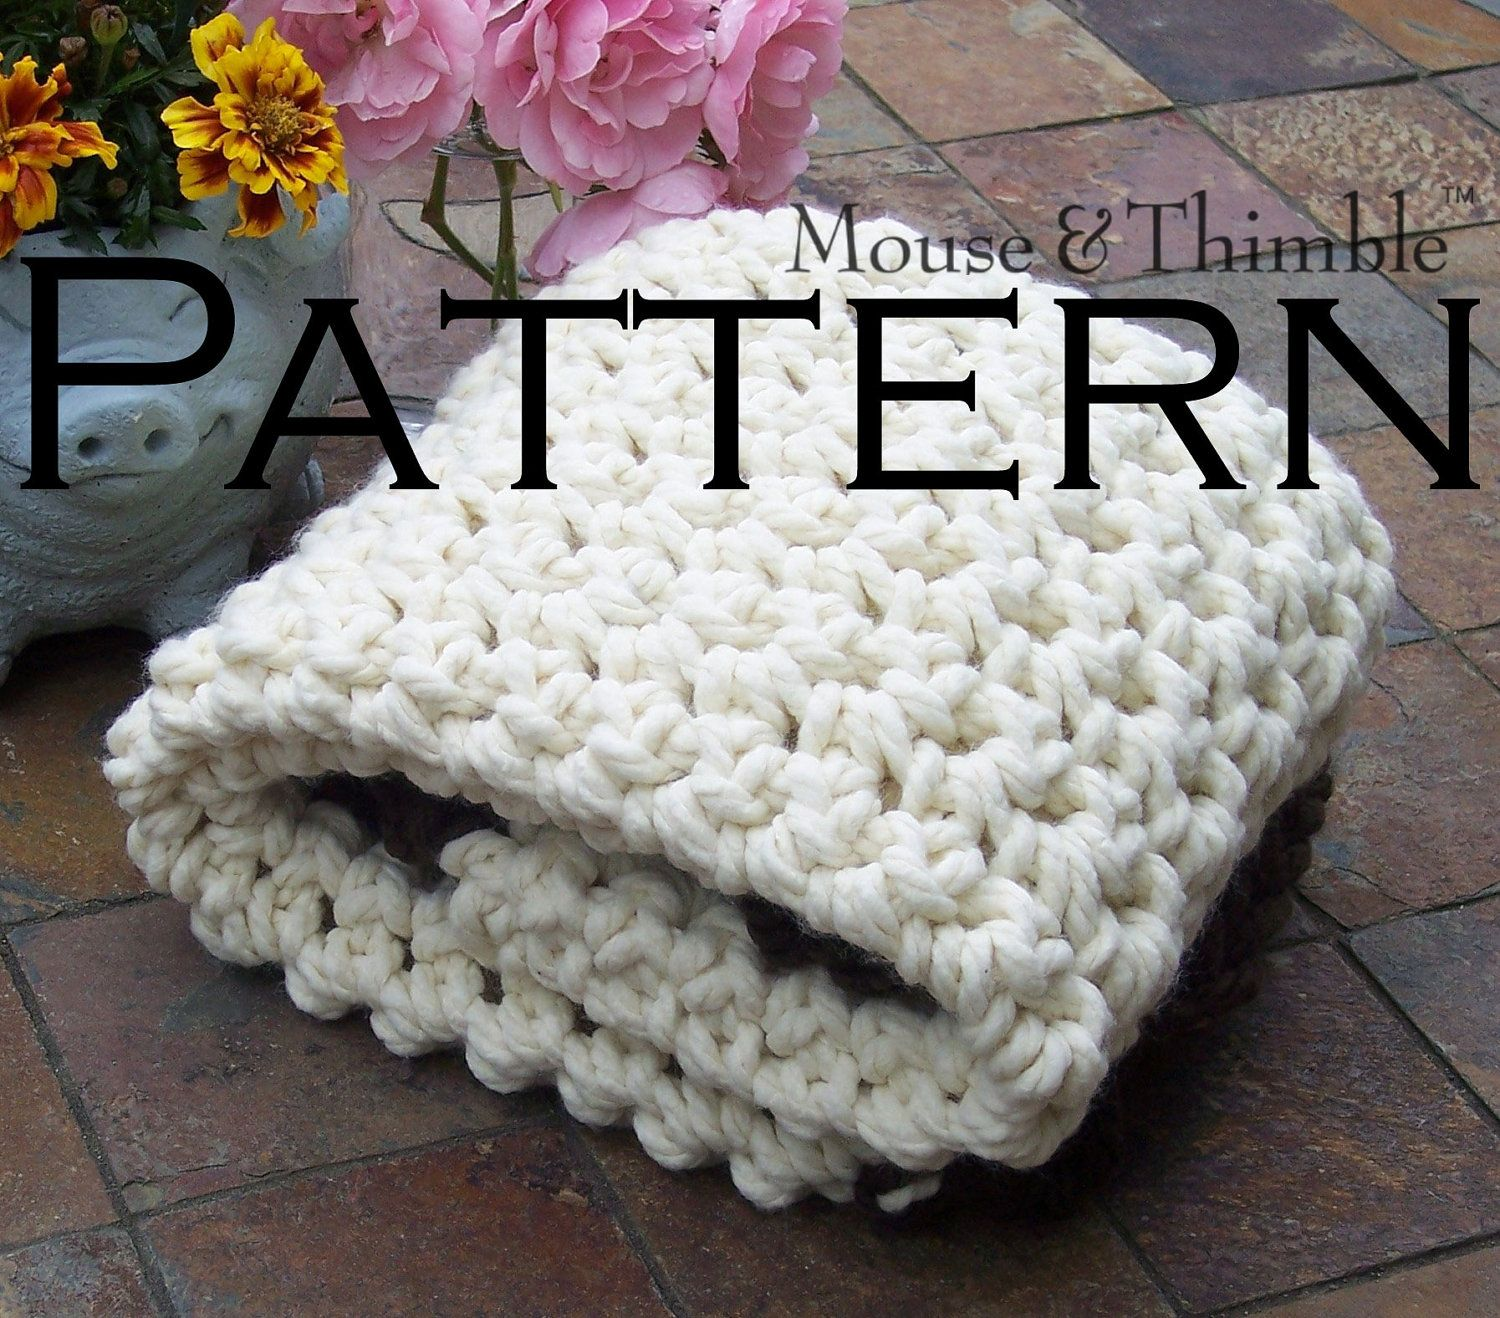 Baby chunky afghan throw crochet pattern pdf 3224 395 via baby chunky afghan throw crochet pattern pdf 3224 395 via etsy bankloansurffo Gallery